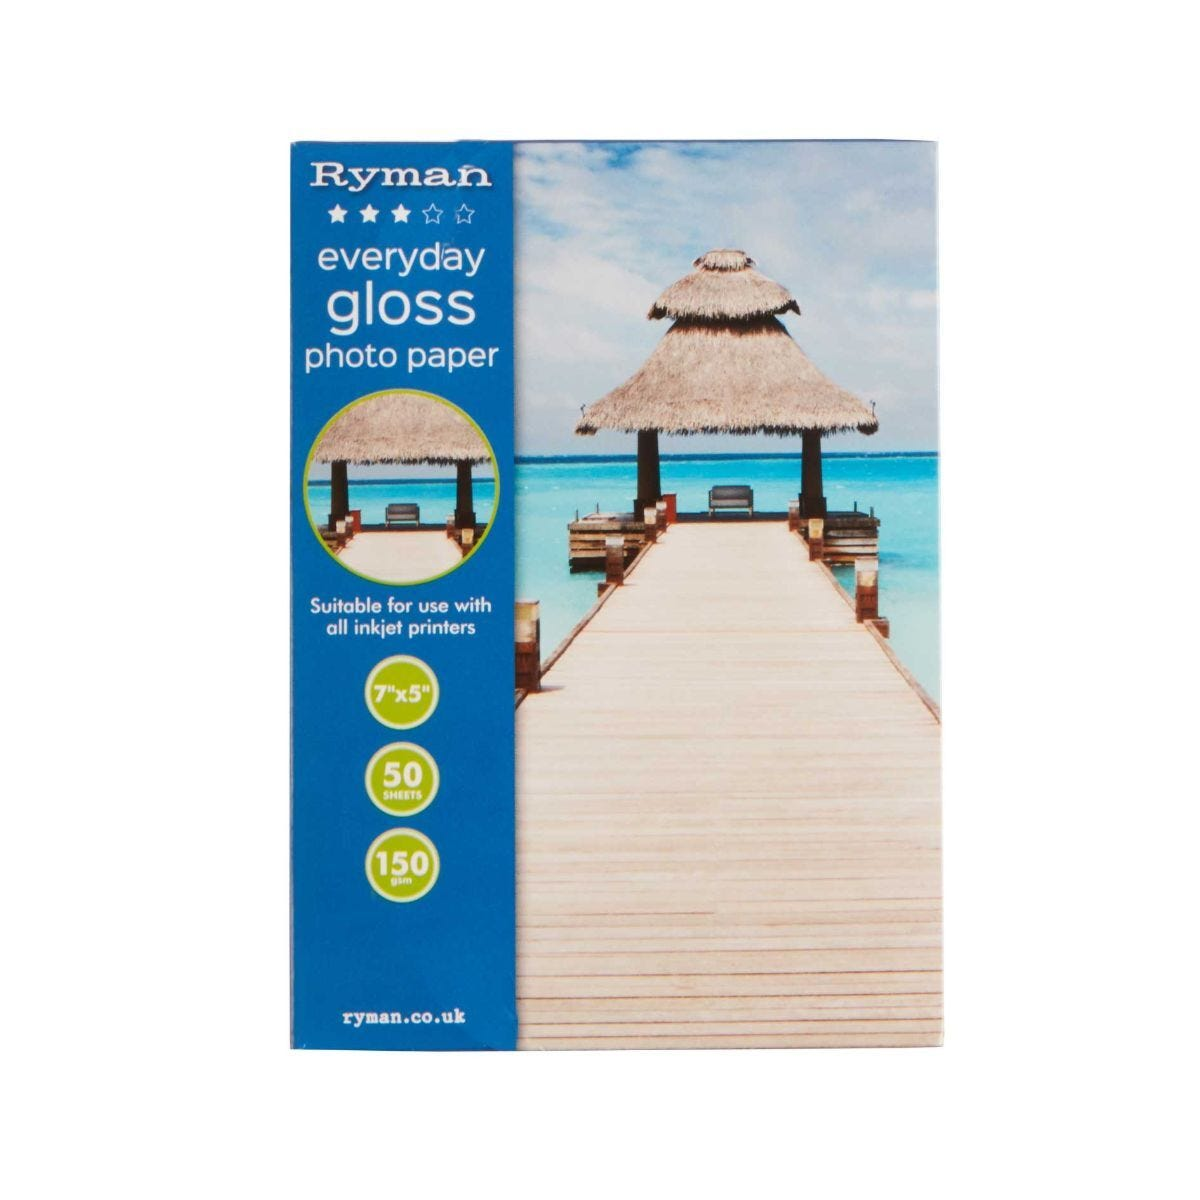 Ryman Everyday Gloss Photo Paper 7x5 Inch 150gsm 50 Sheets